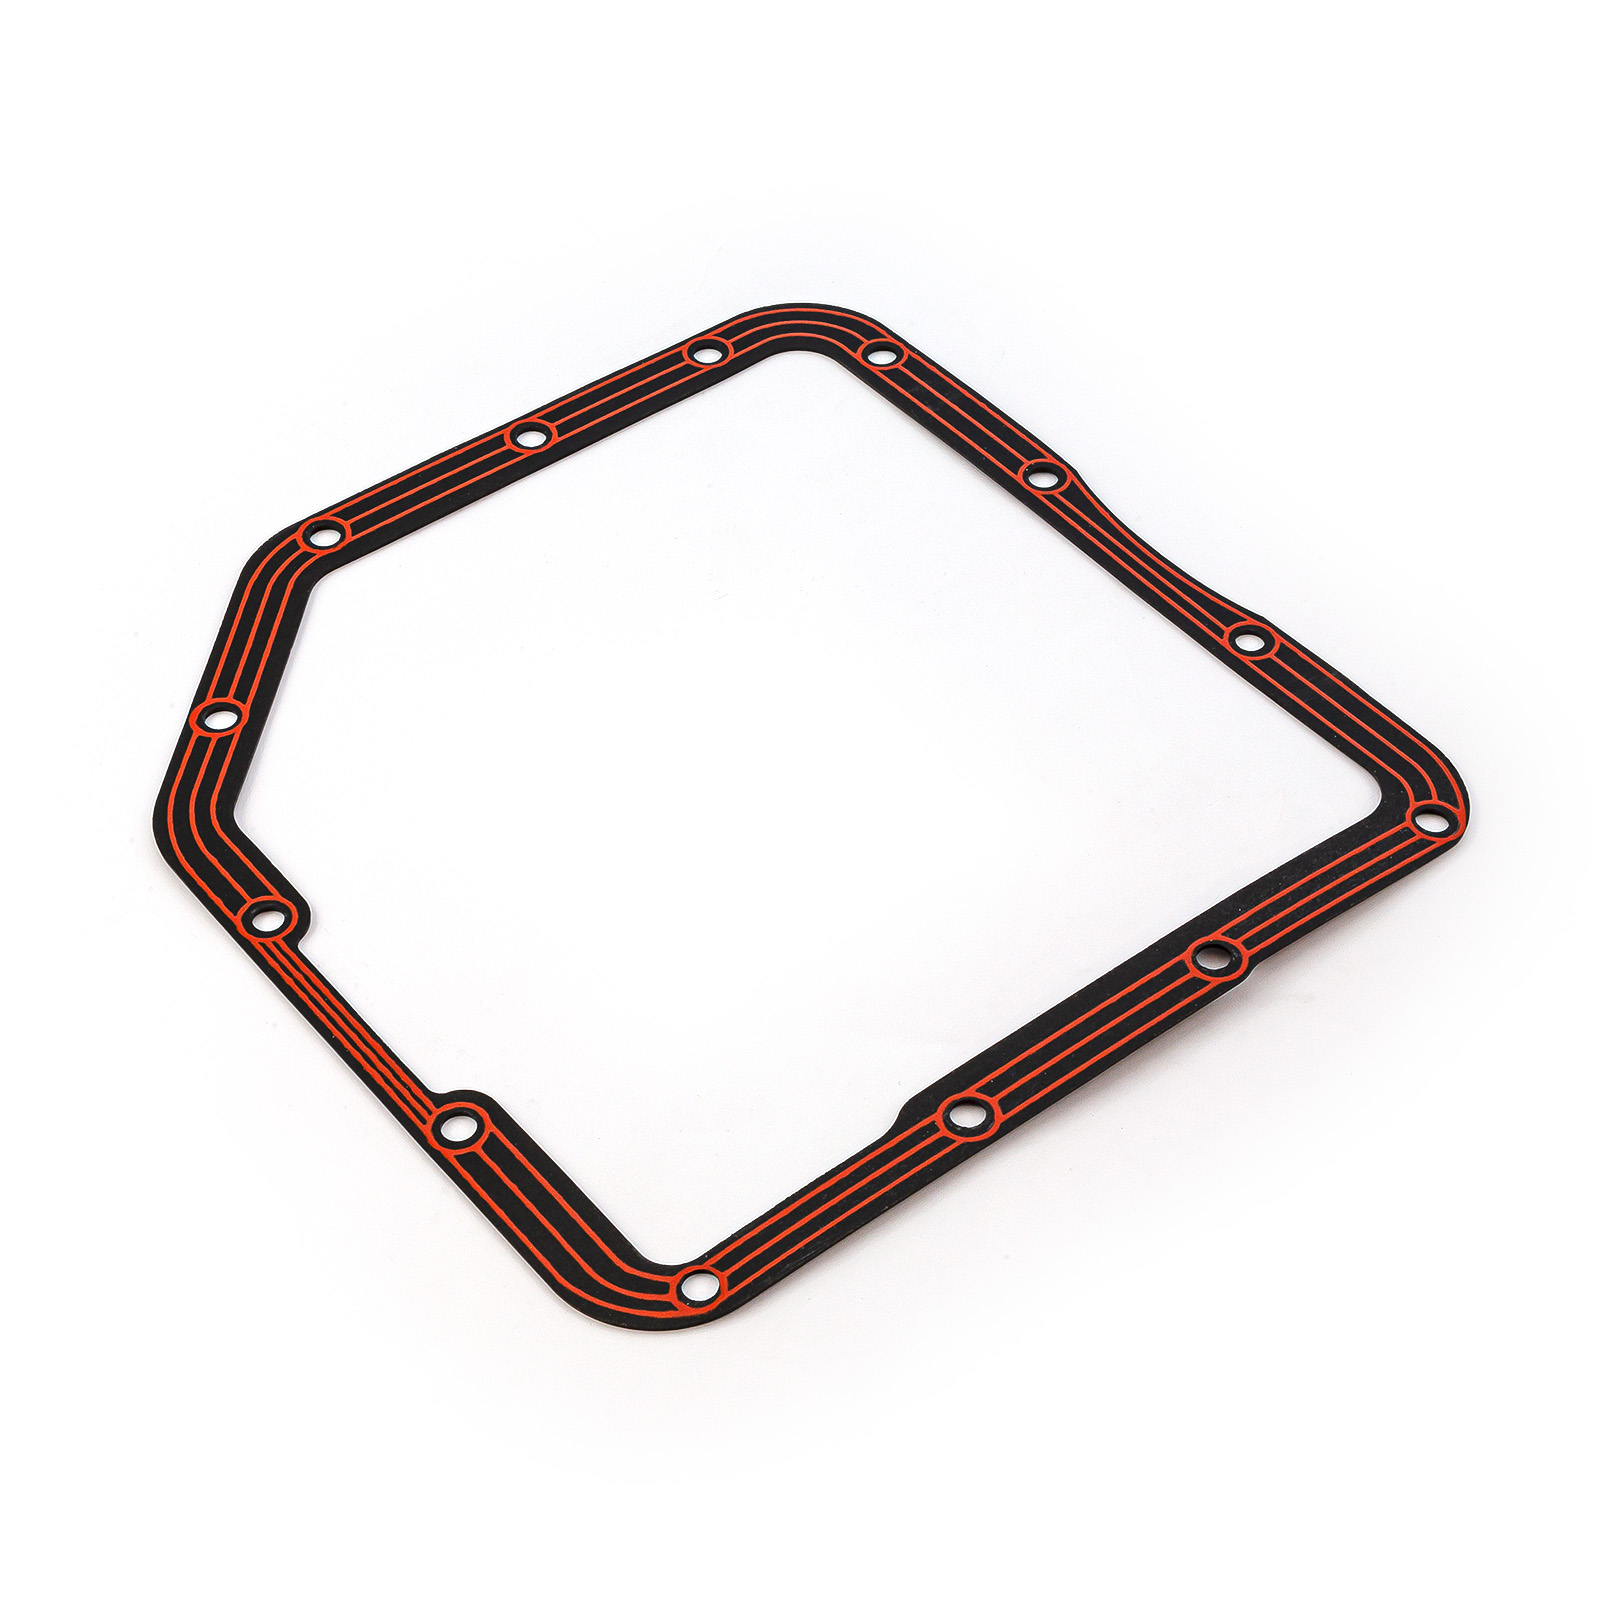 TH 400 Turbo 400 Transmission Pan Gasket Steel with Rubber